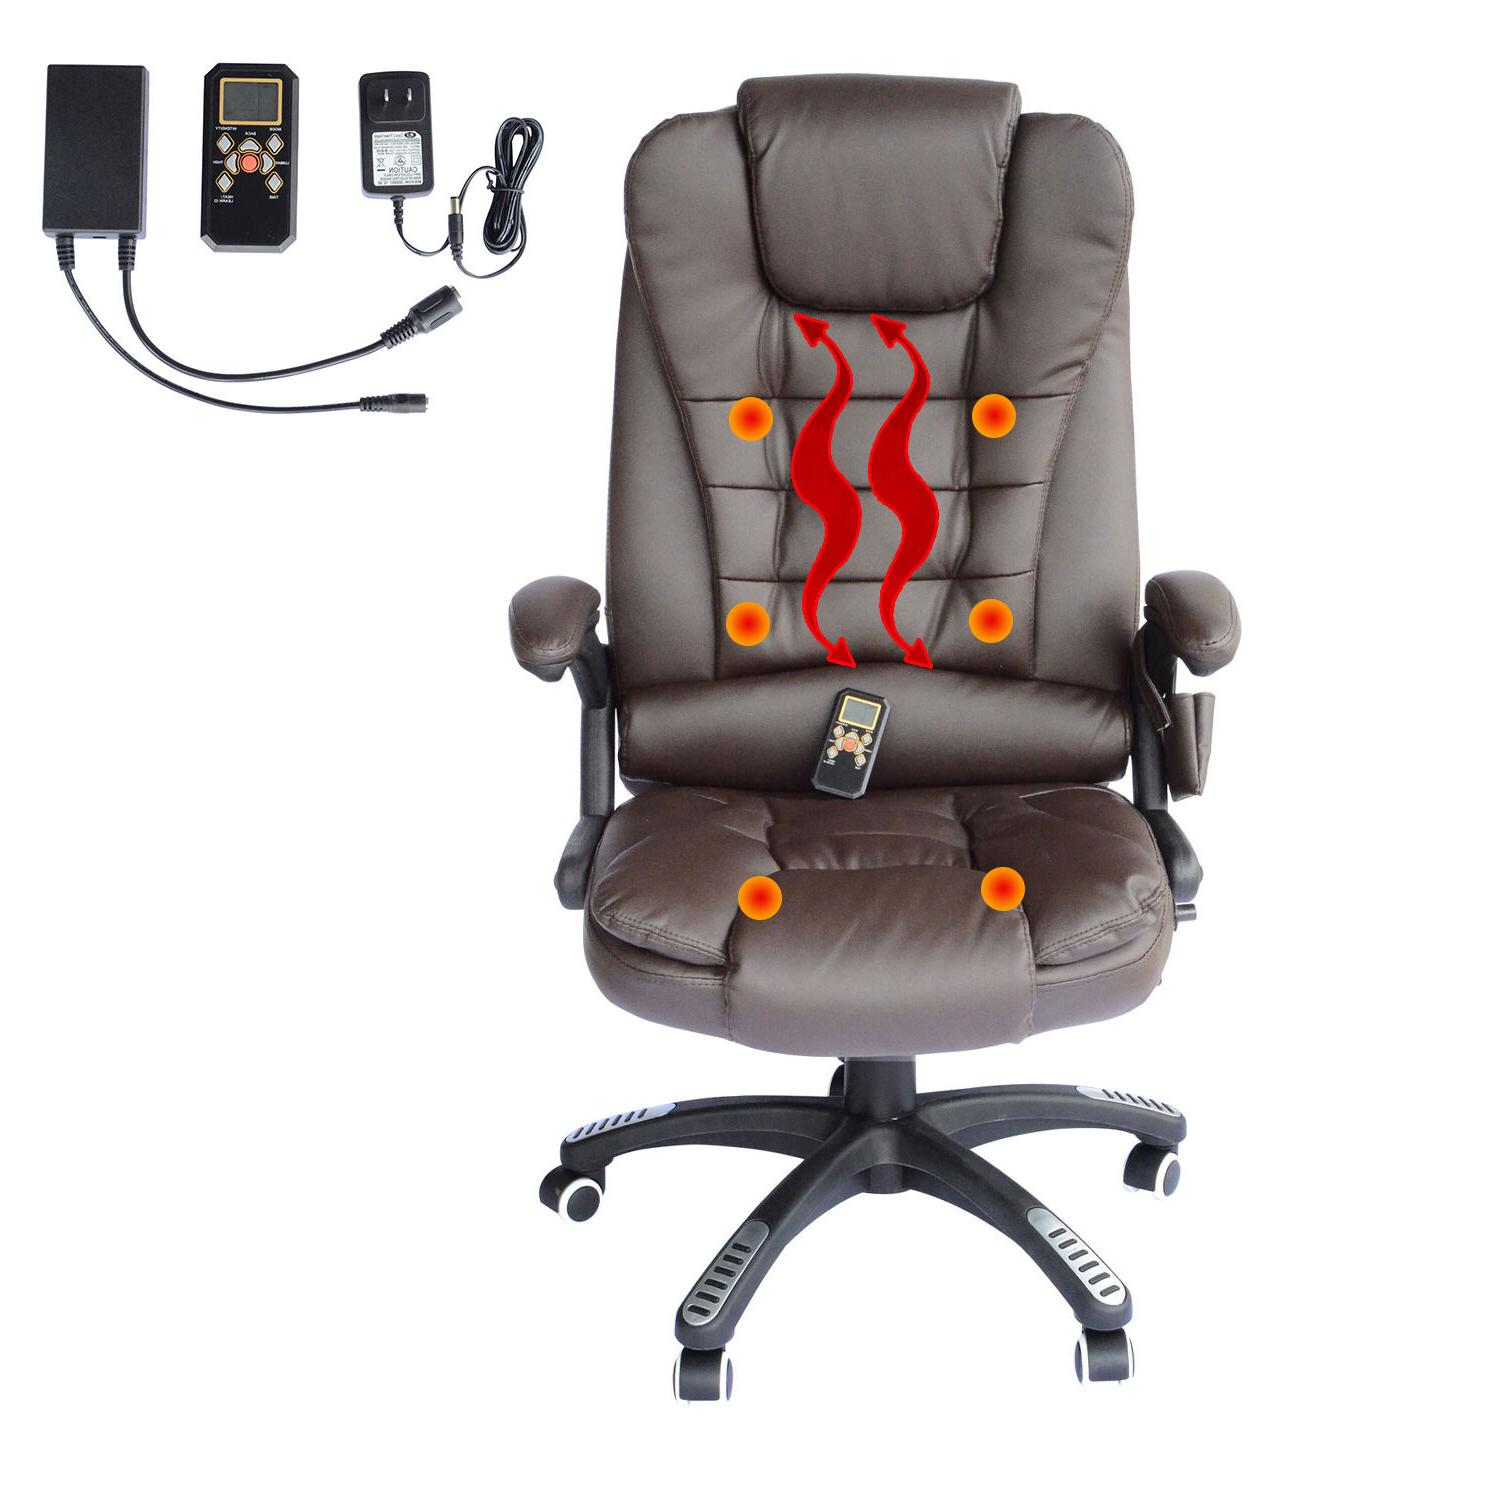 Executive Heated Computer Desk Chair - Brown